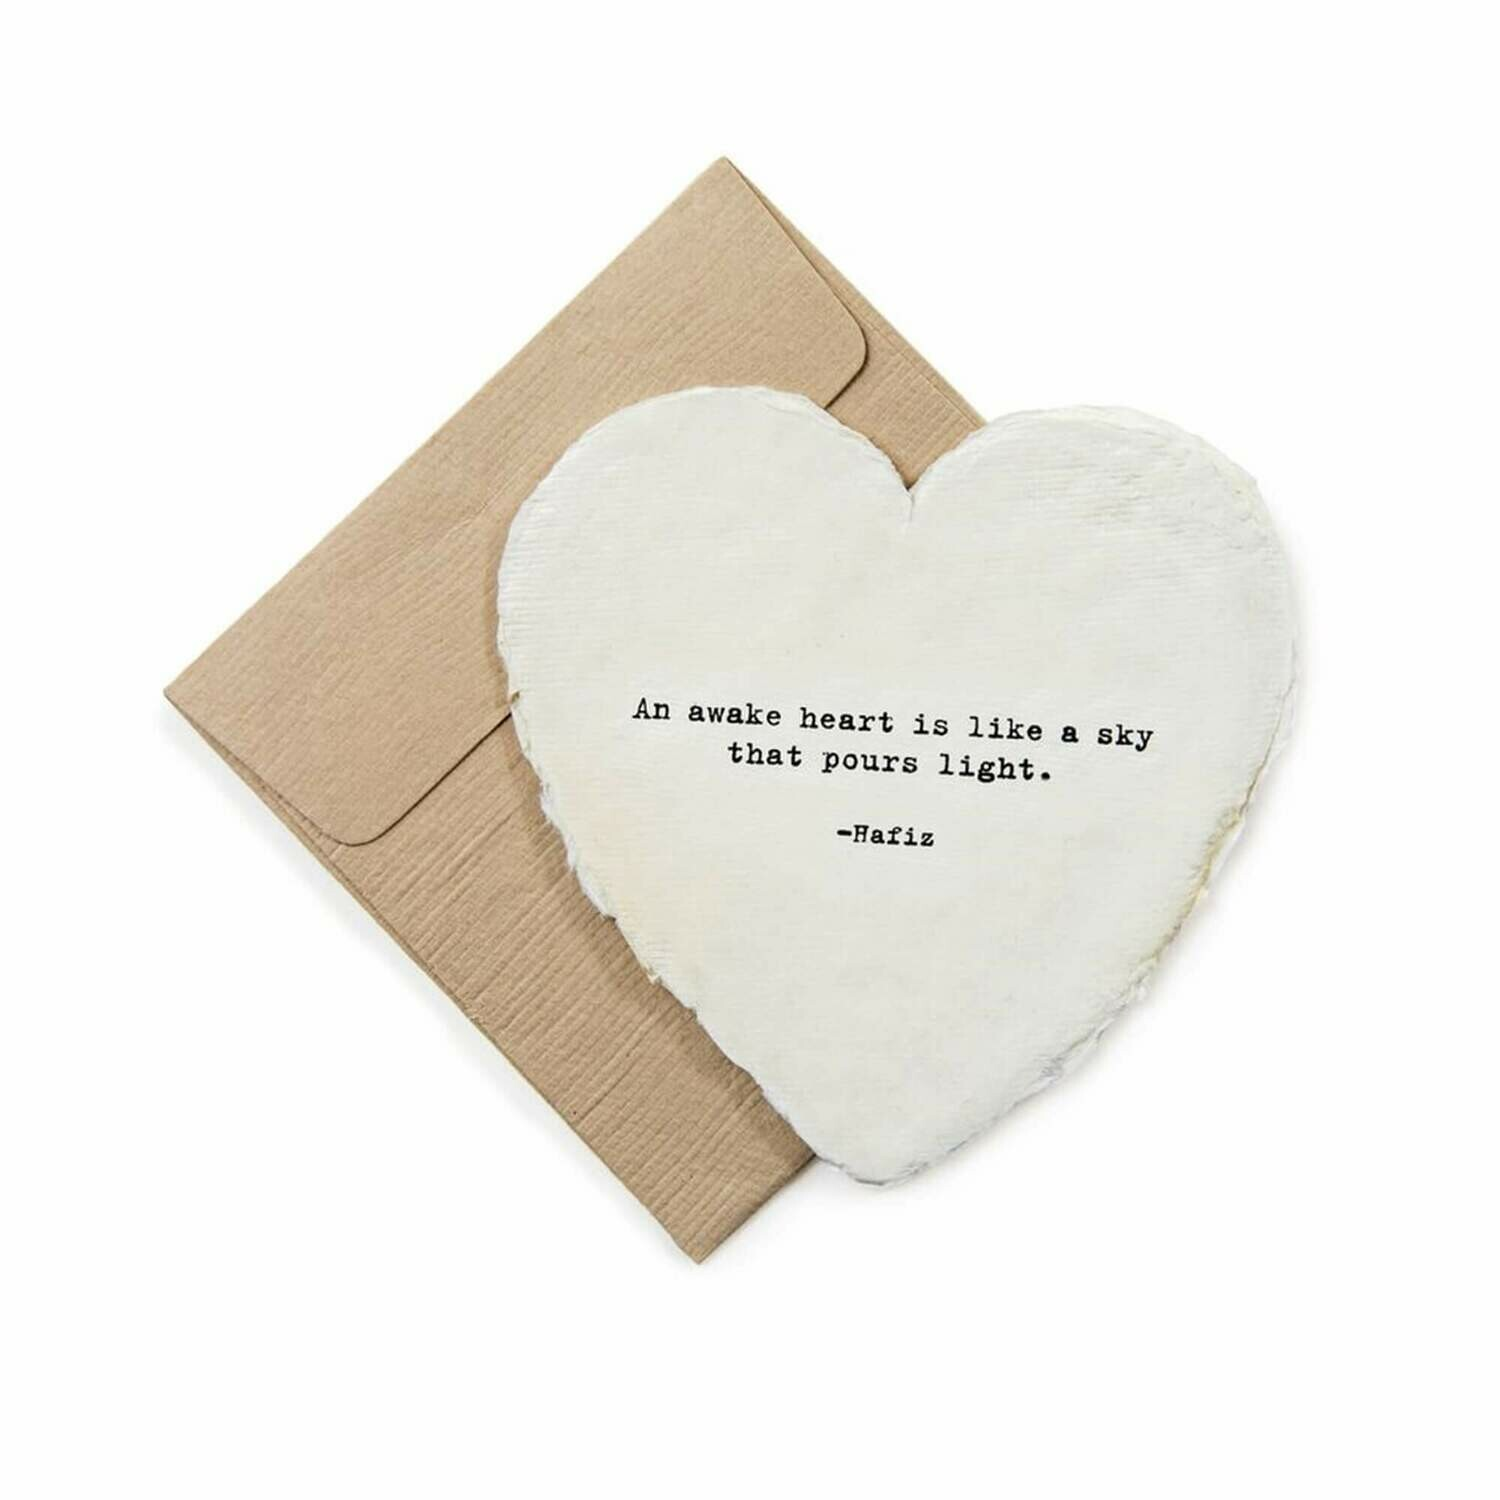 Mini Heart Shaped Card & Envelope-An awake heart is like a sky